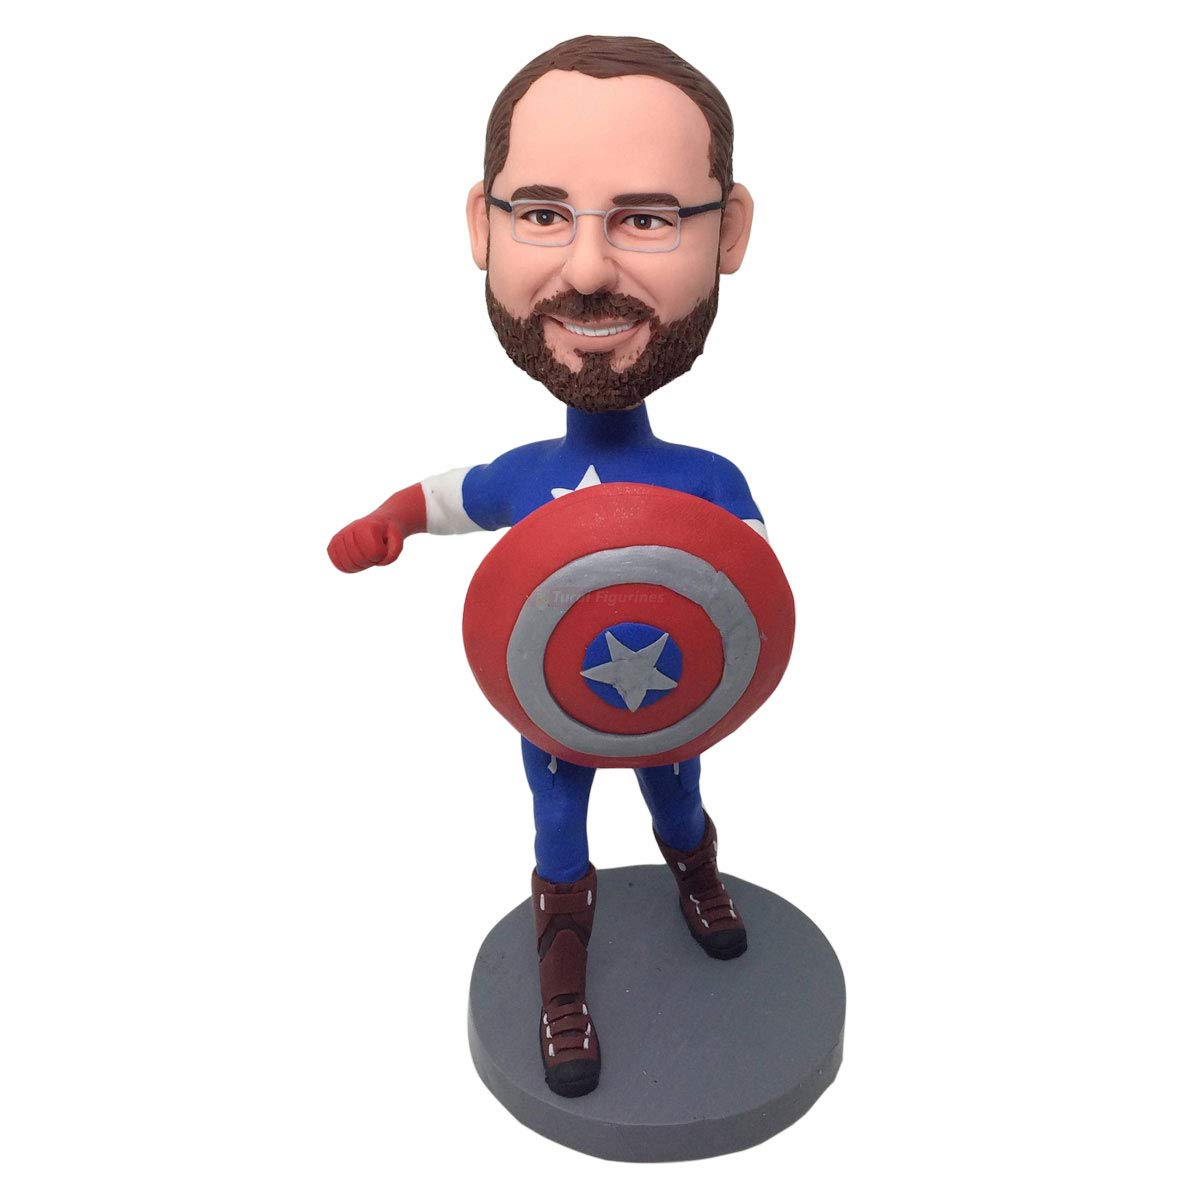 Captain America Personalized Gift Clay Figurines Based on Customers Photos Birthday Cake Topper Husband Boyfriend Son Boss Birthday Gift